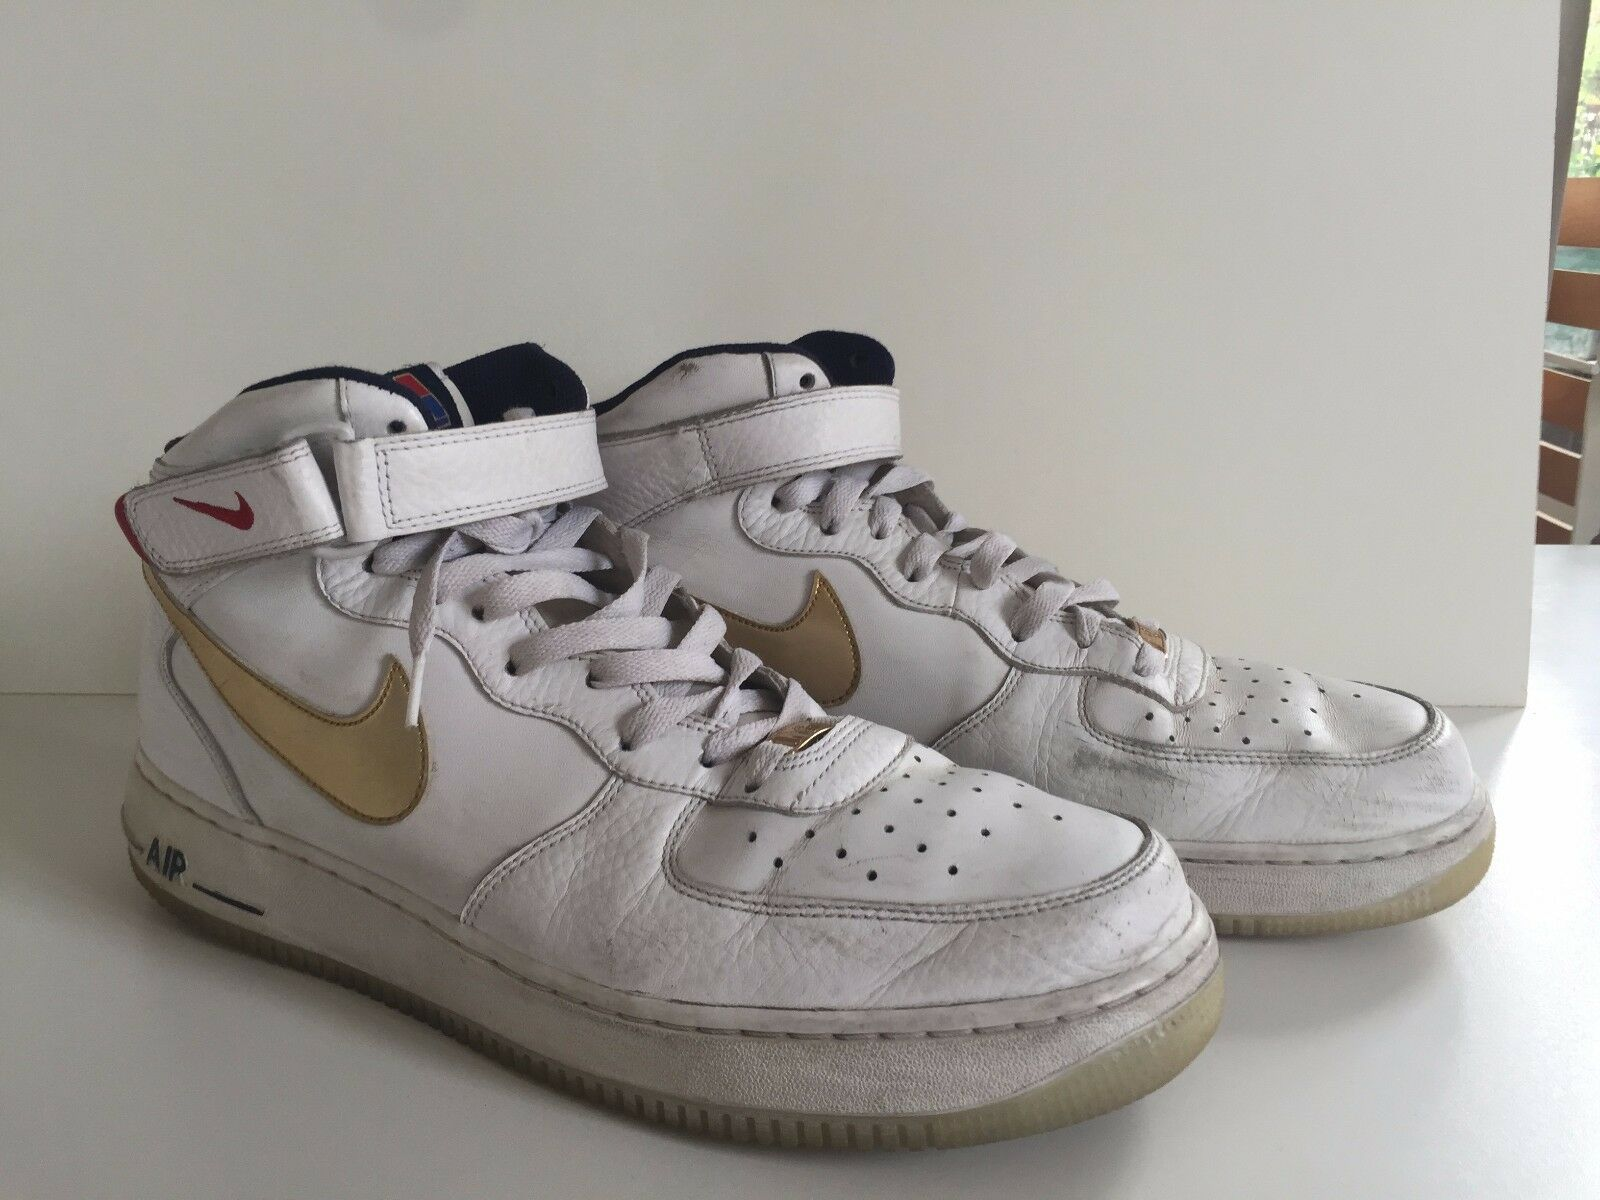 NIKE AIR FORCE 1 OLYMPIC USA Leather White/ Gold High Sz 13 Rare